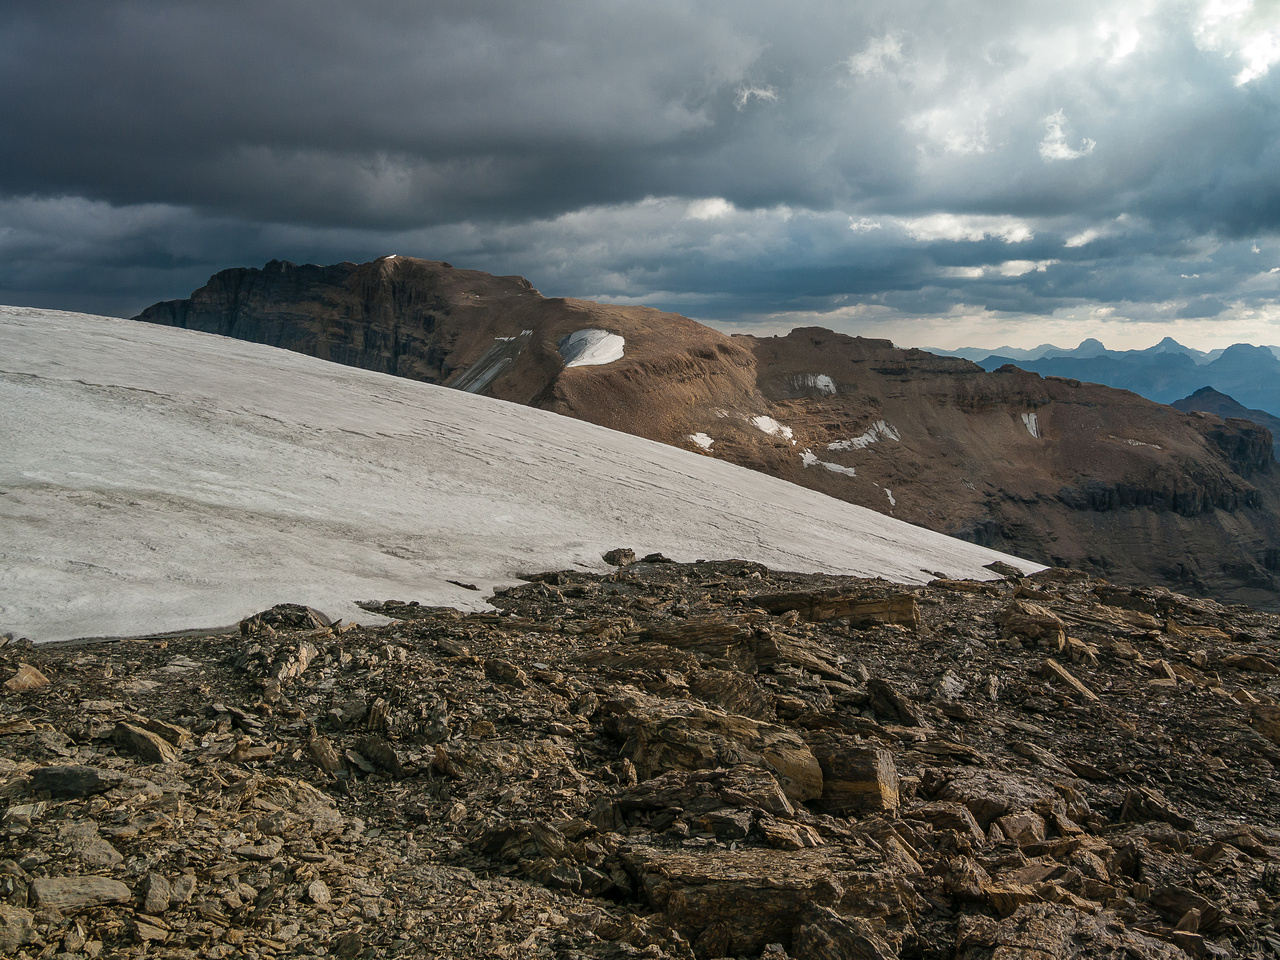 My legs get tired looking at the long summit ridge of Mount Daly that we were on the day before! ;)